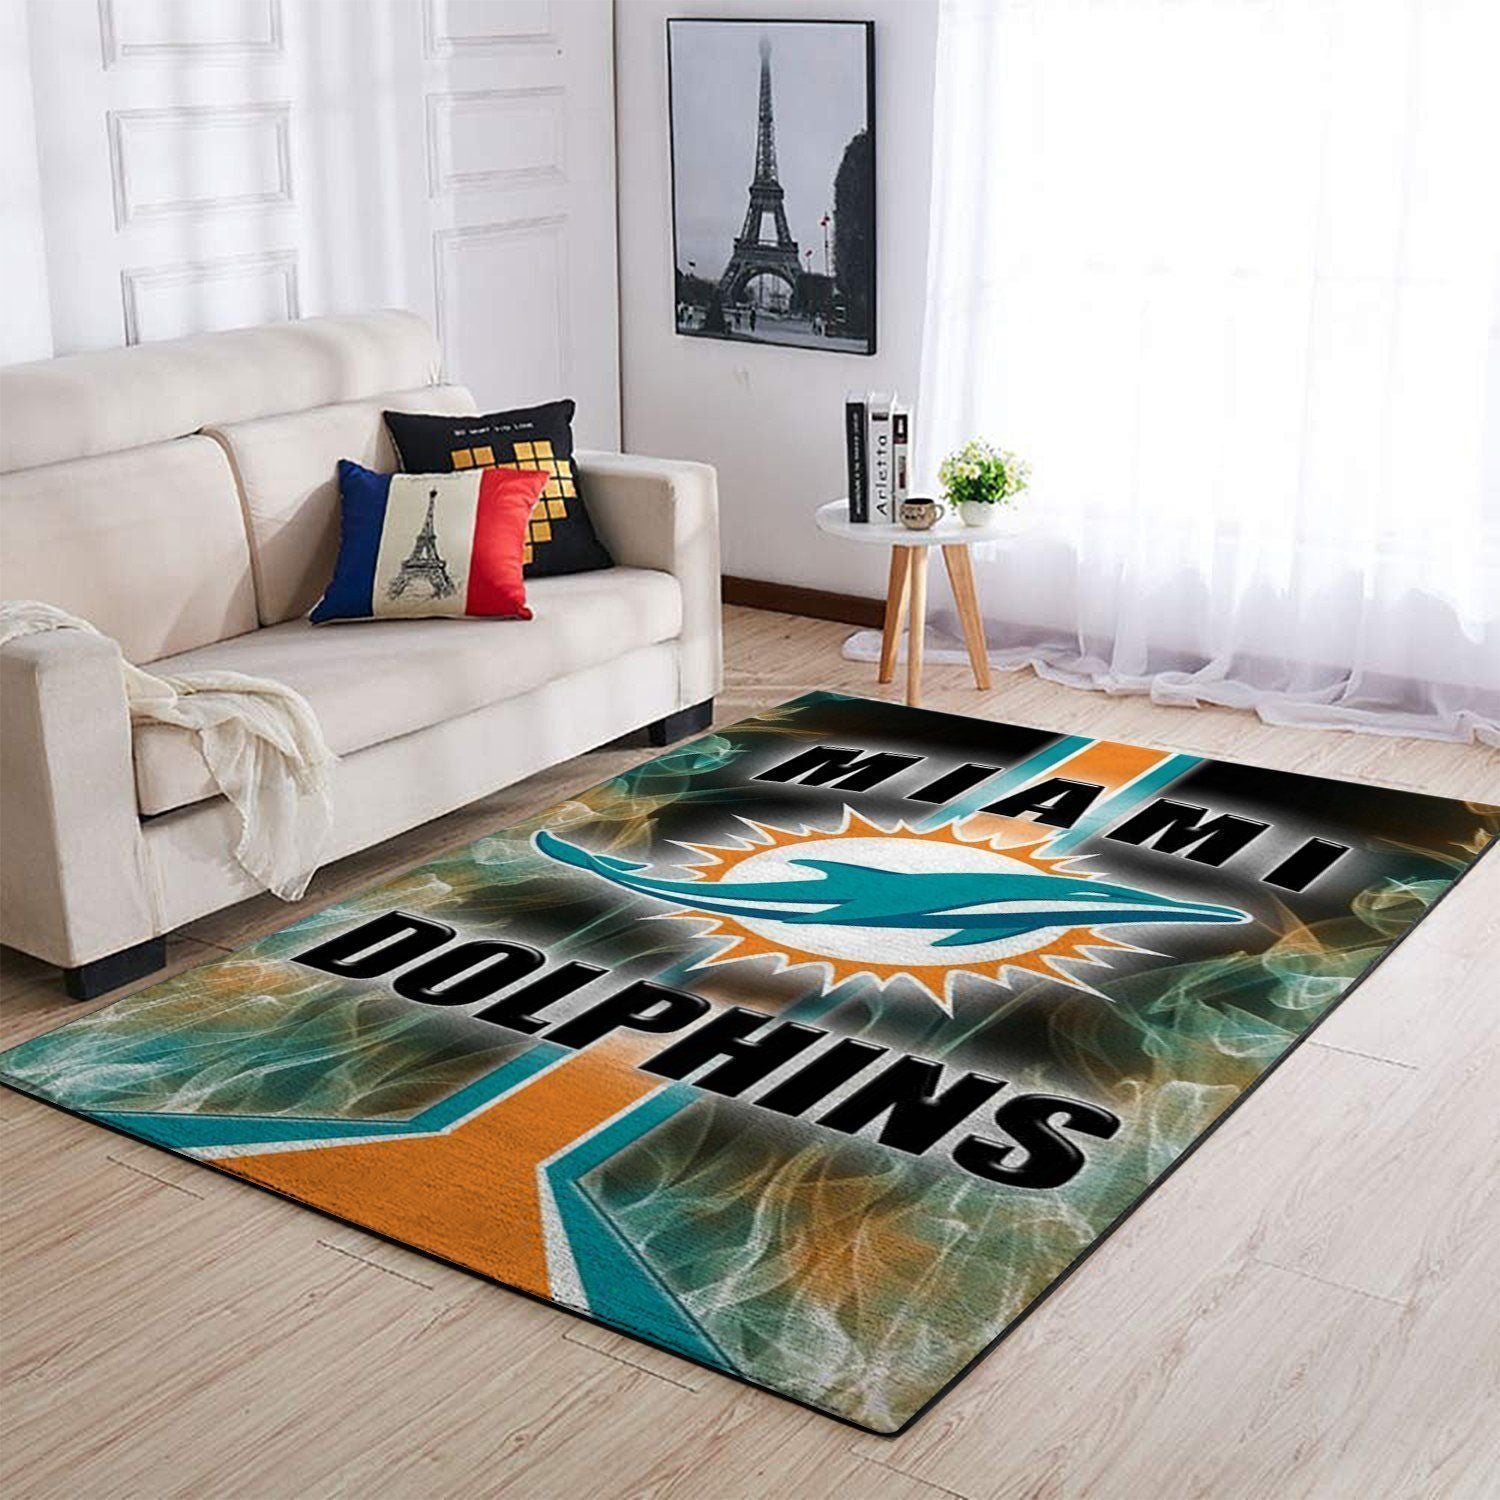 Miami Dolphins Area Rugs NFL Football Living Room Carpet Team Logo Custom Floor Home Decor 1910072